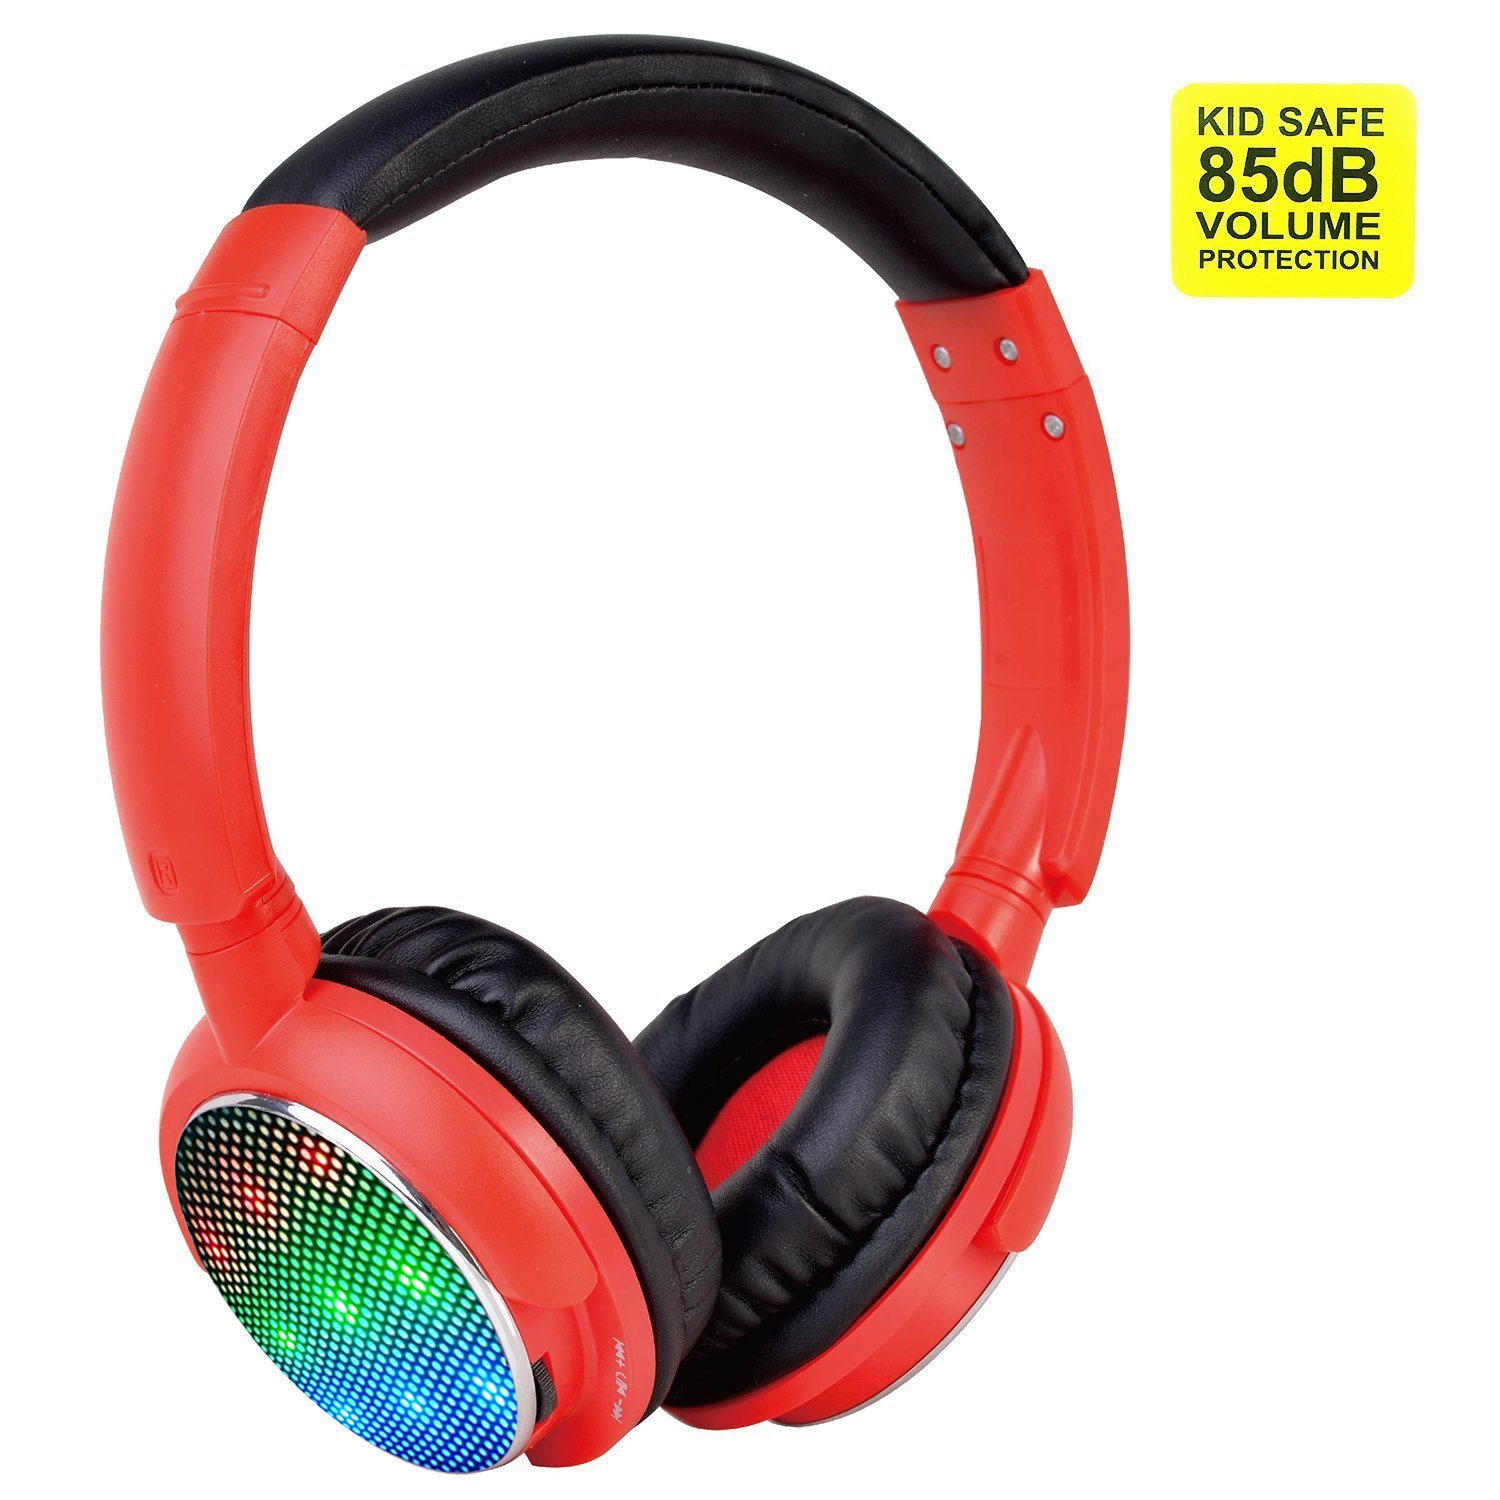 kb300 red 11-22